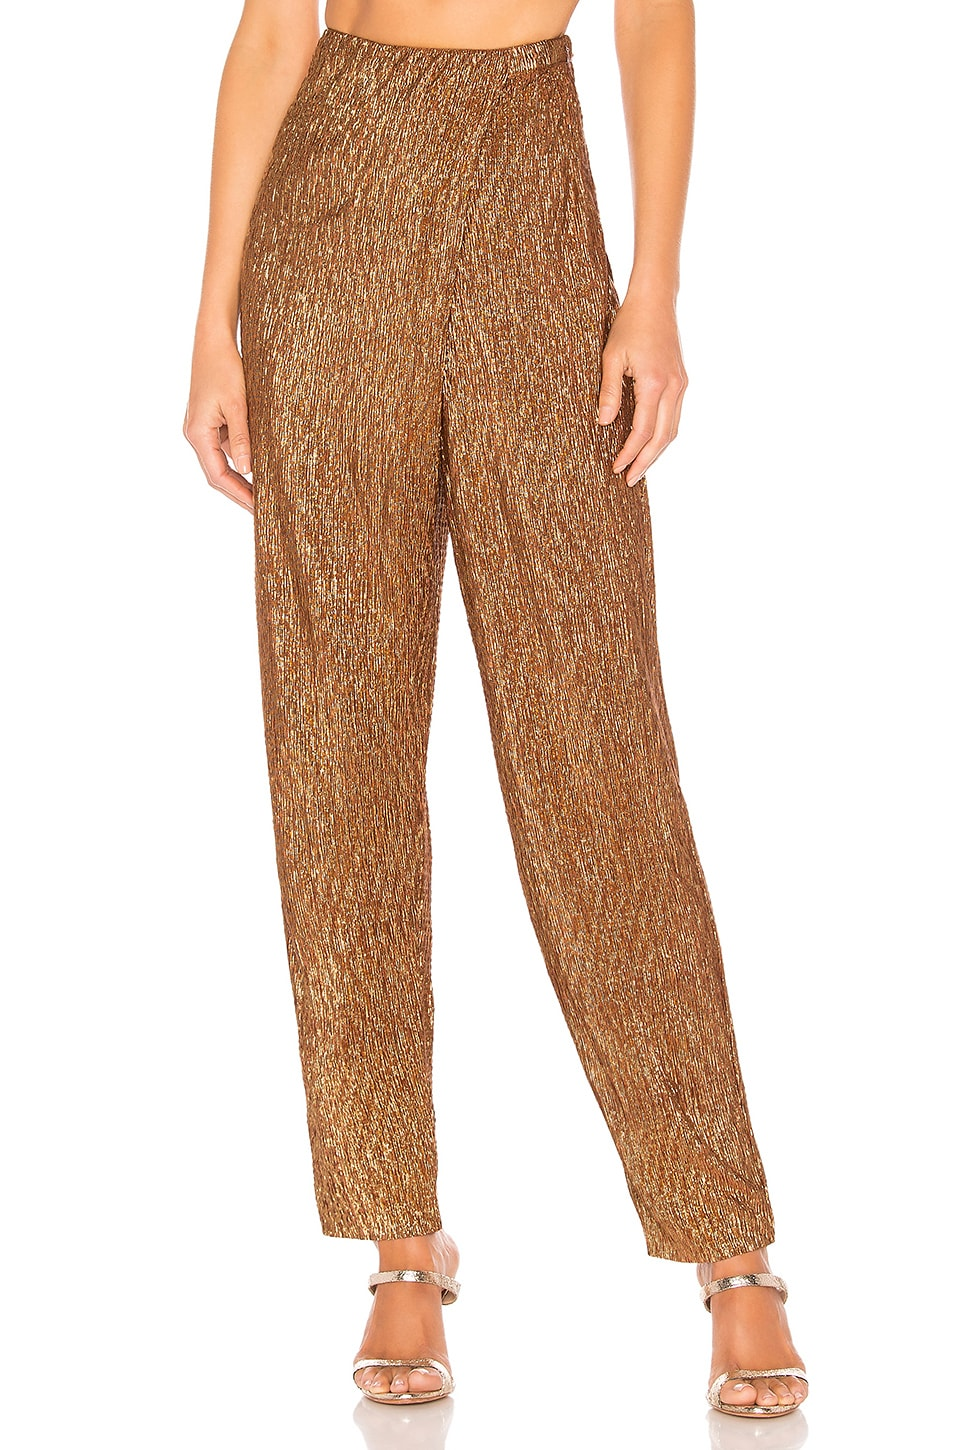 House of Harlow 1960 x REVOLVE Odel Pant in Bronze